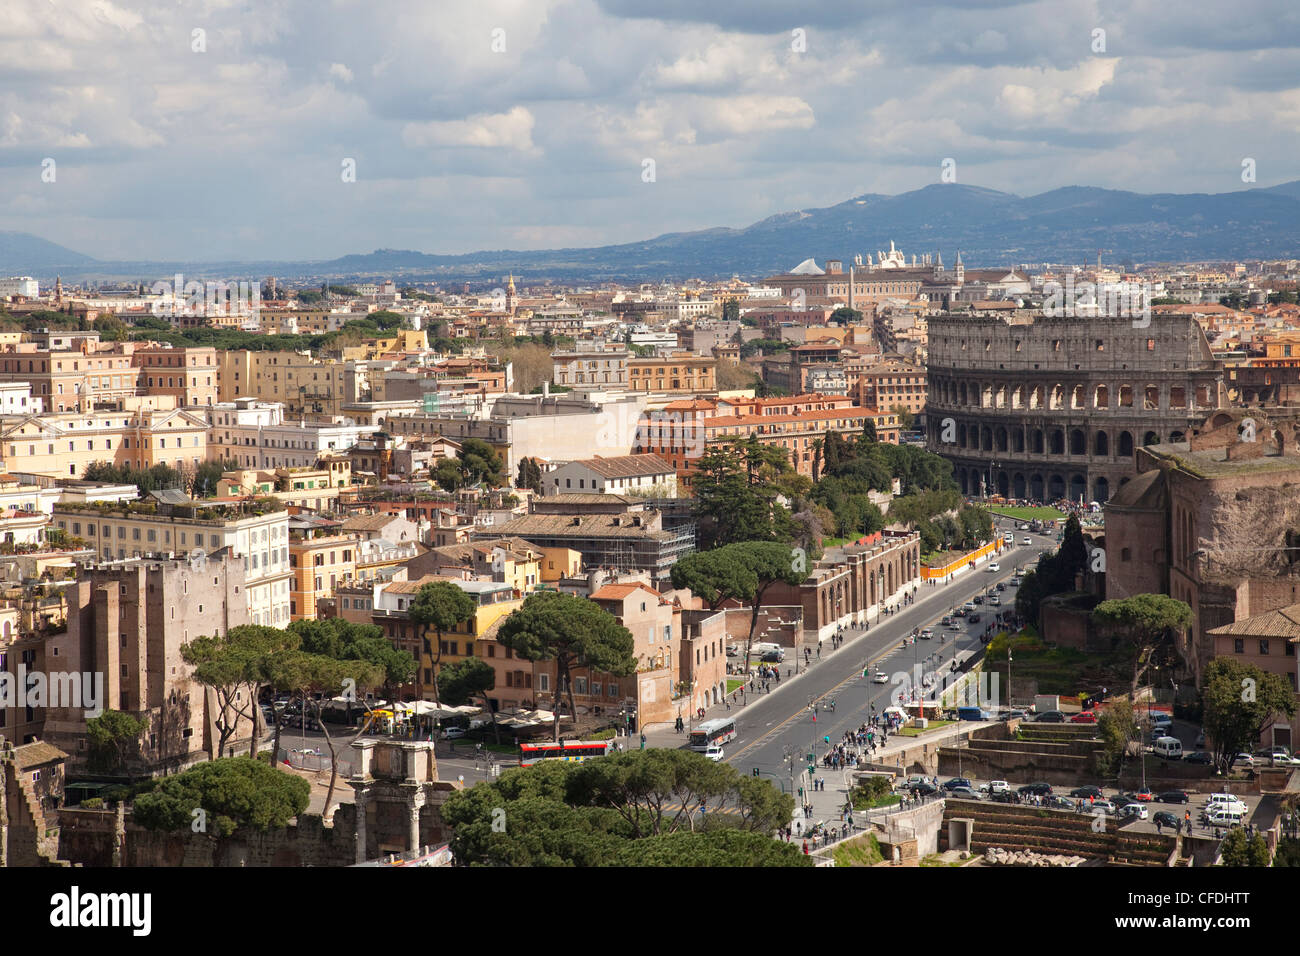 View over Rome and the Colosseum from the Altar of the Fatherland, Capitoline Hill, Rome, Lazio, Italy, Europe - Stock Image